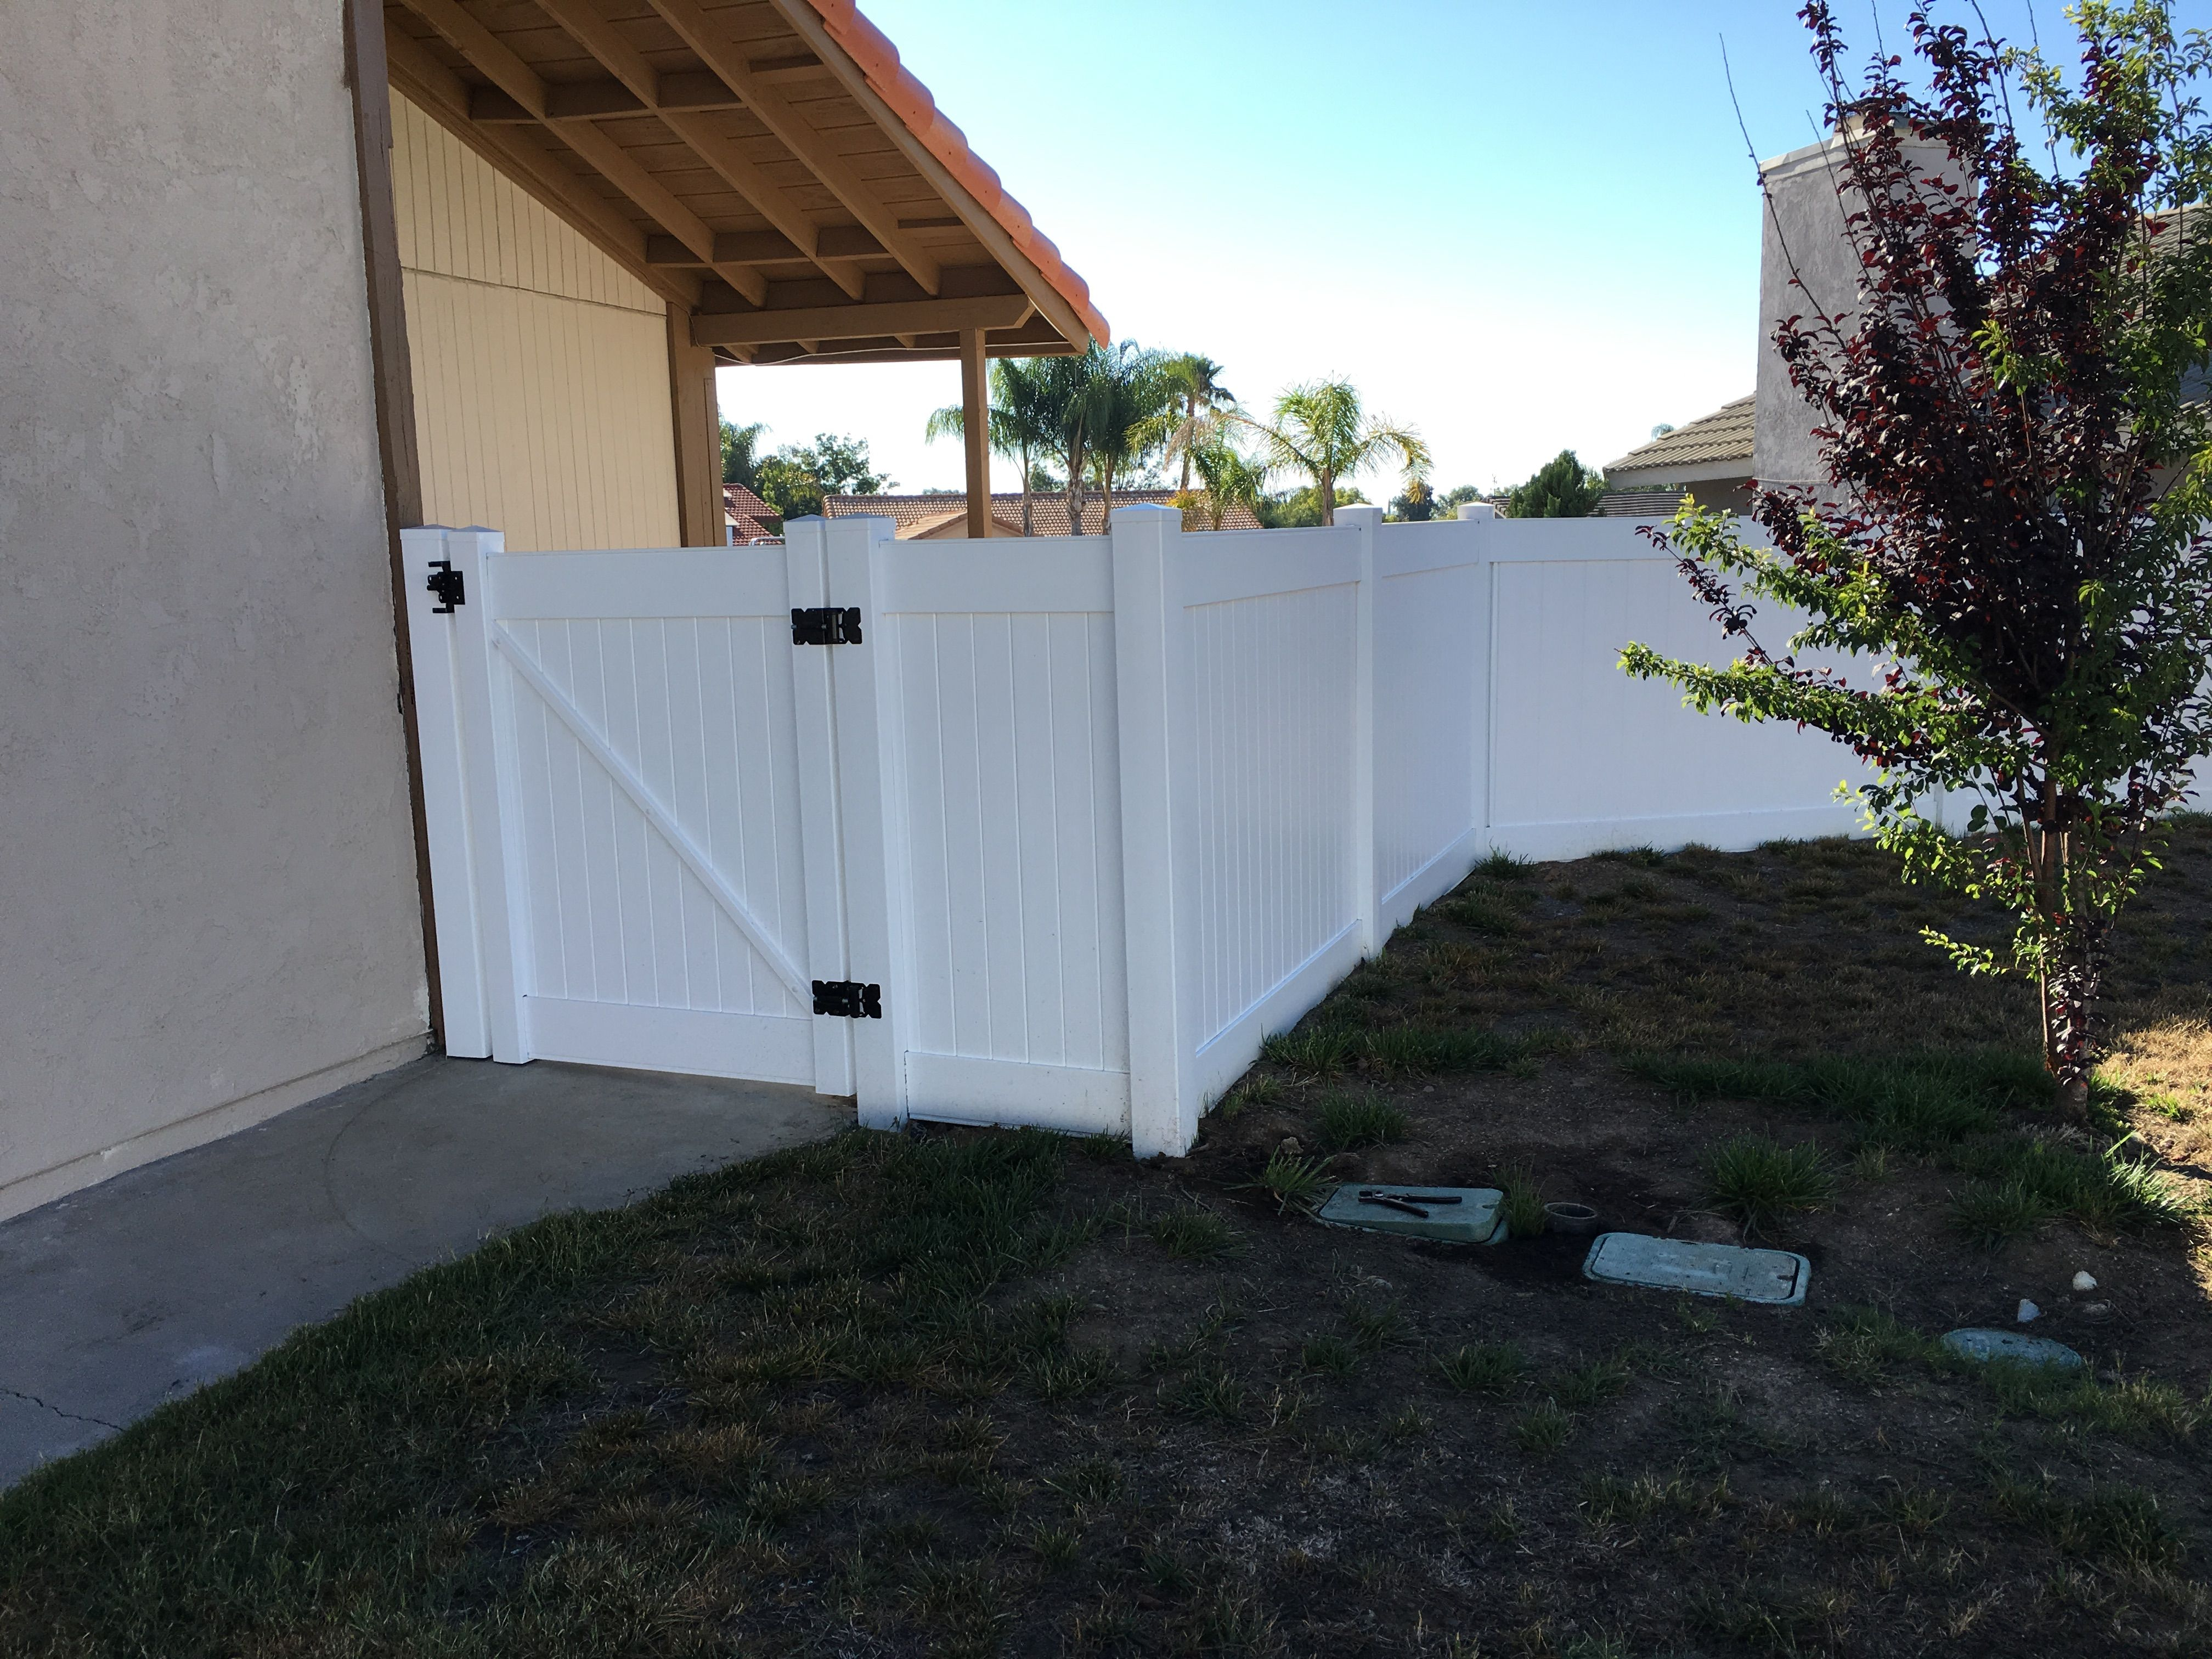 White No Maintenance Vinyl Fence And Gate With Black Hinges 3t Fence In Temecula Ca 951 304 9820 Fence Doors Vinyl Fence Door Hinges